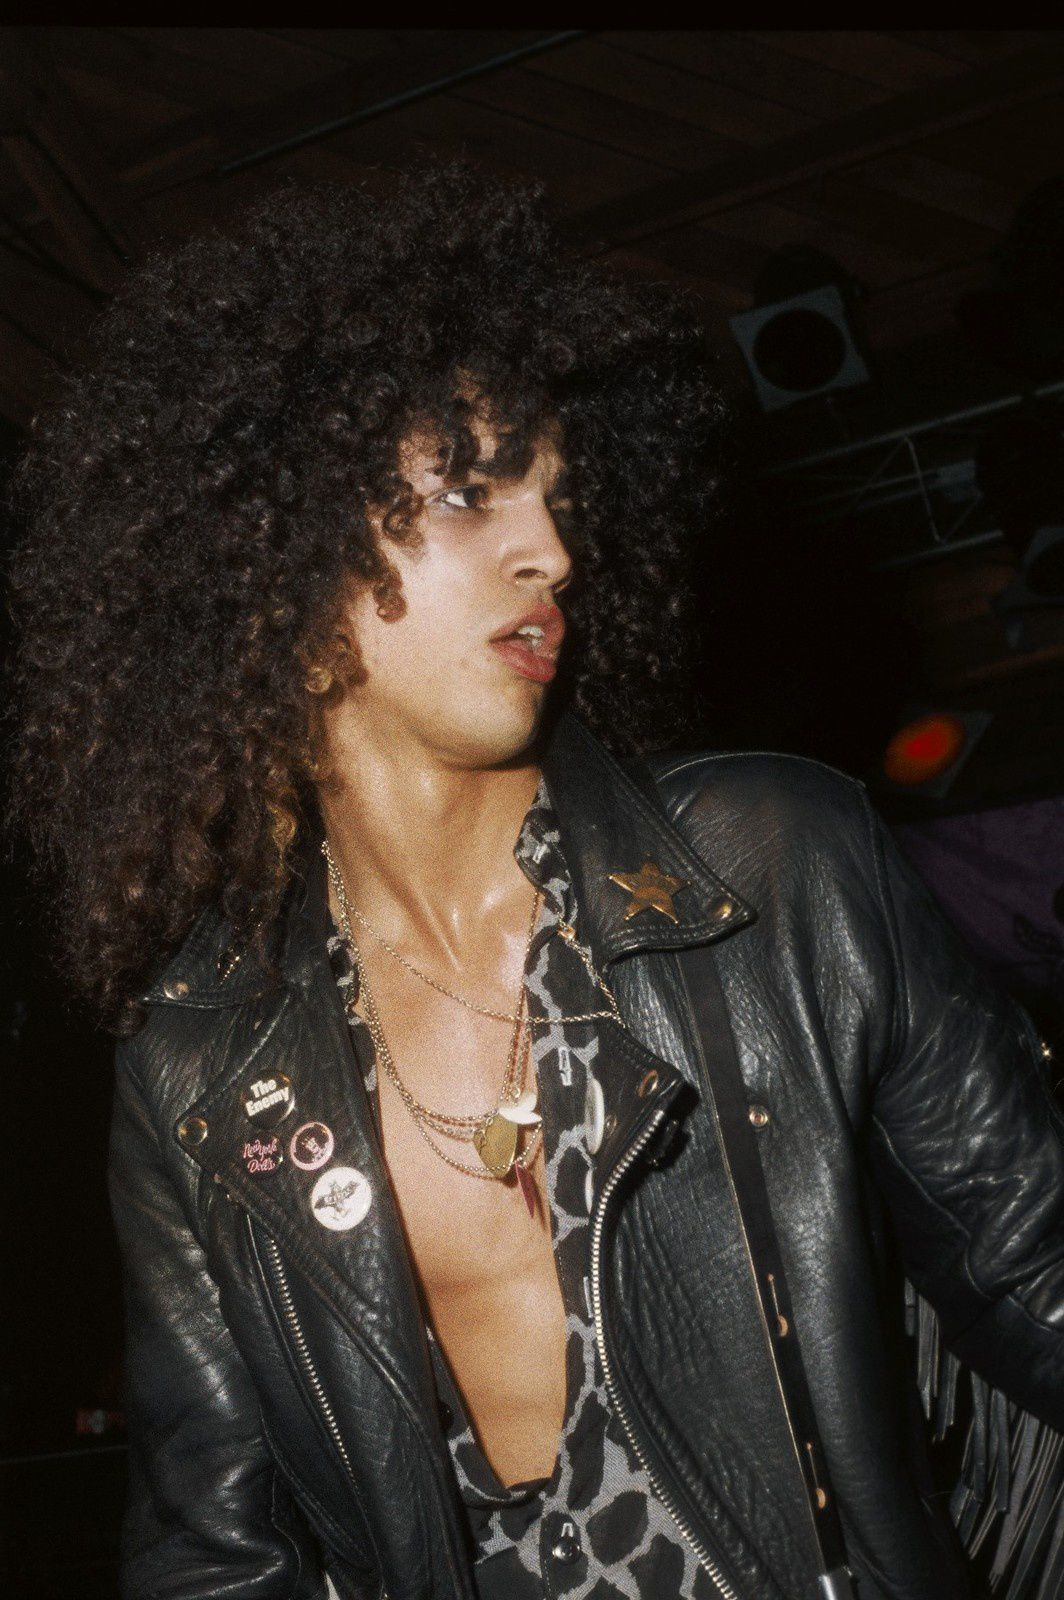 Slash - February 28, 1986 - Photo by Marc Canter